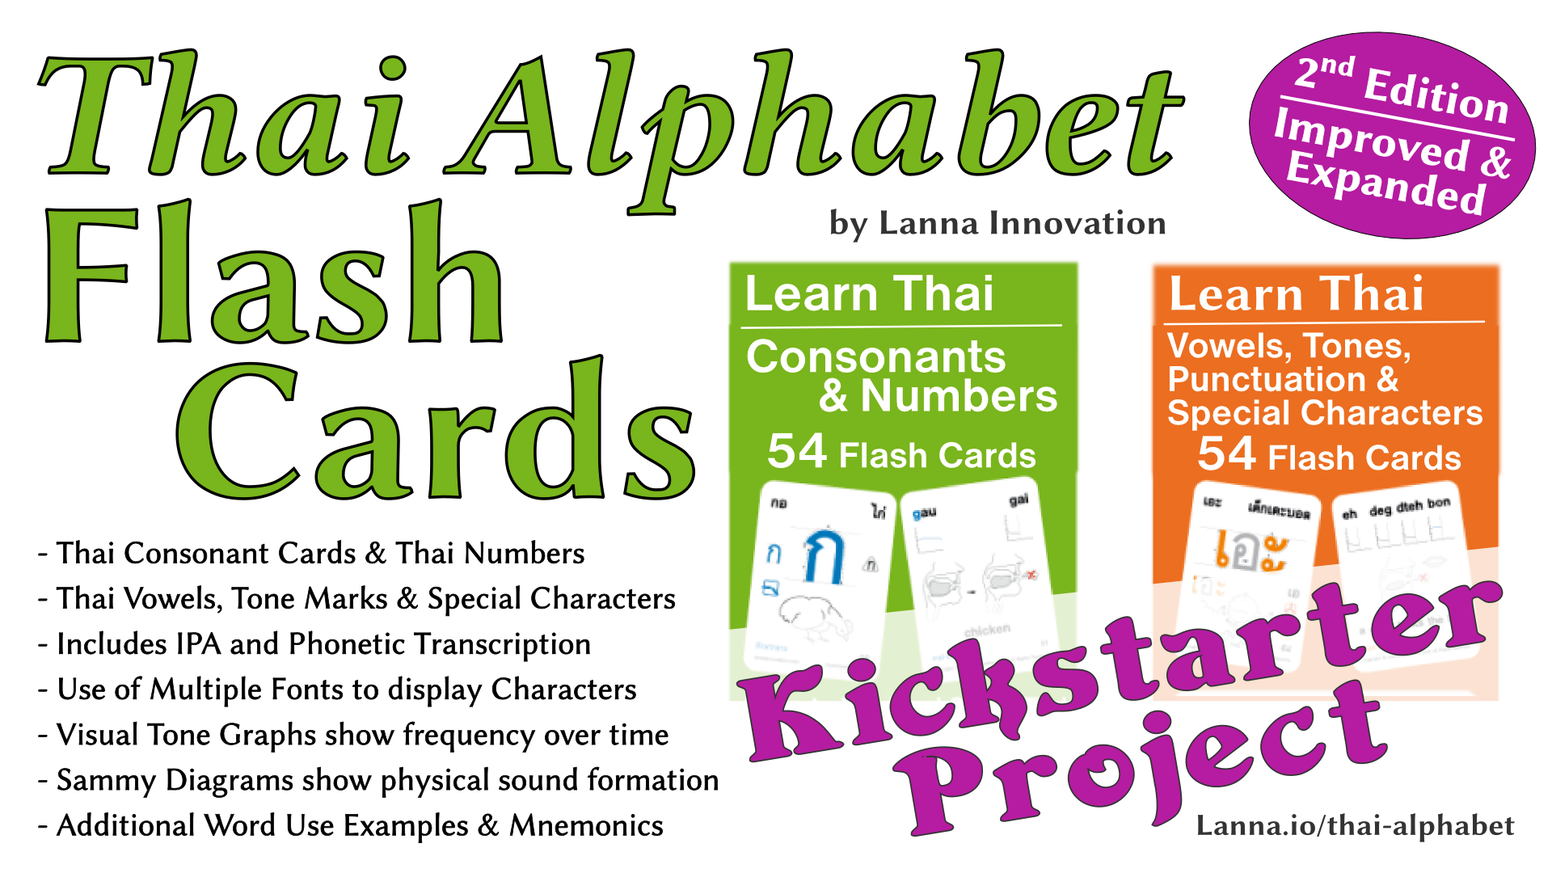 Thai Alphabet Cards - Improved & Expanded by Lanna Innovation